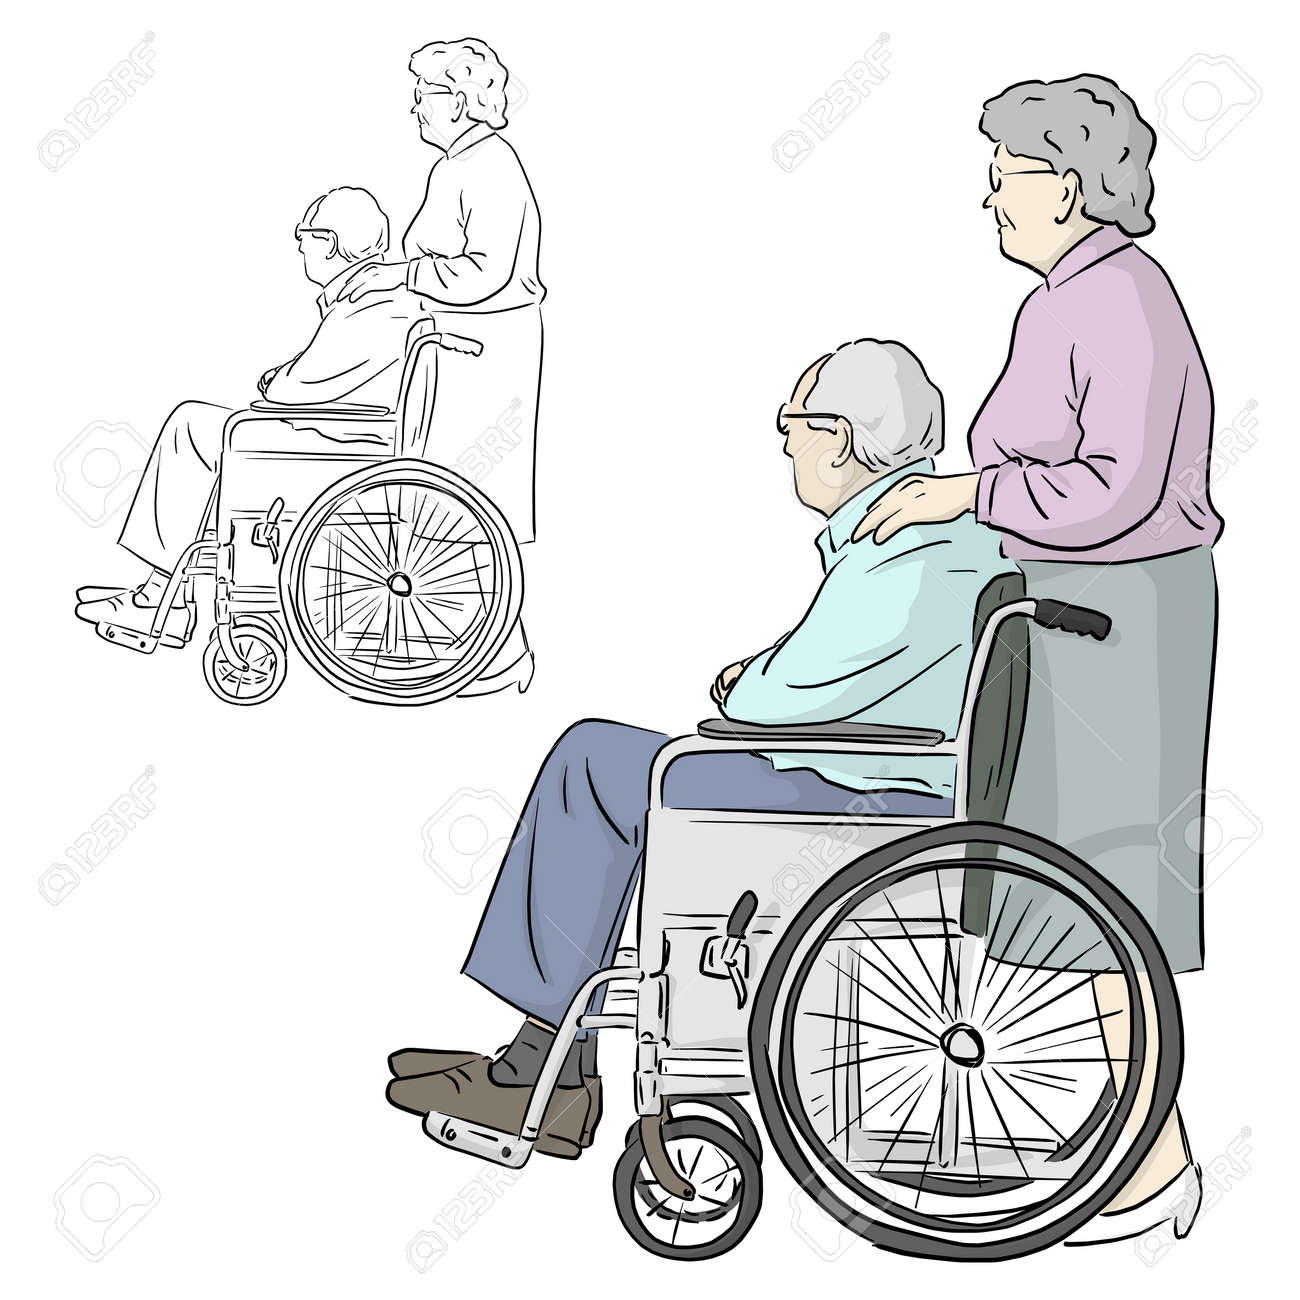 old woman standing with man sitting on wheelchair vector illustration sketch doodle hand drawn with black lines isolated on white background - 159125507